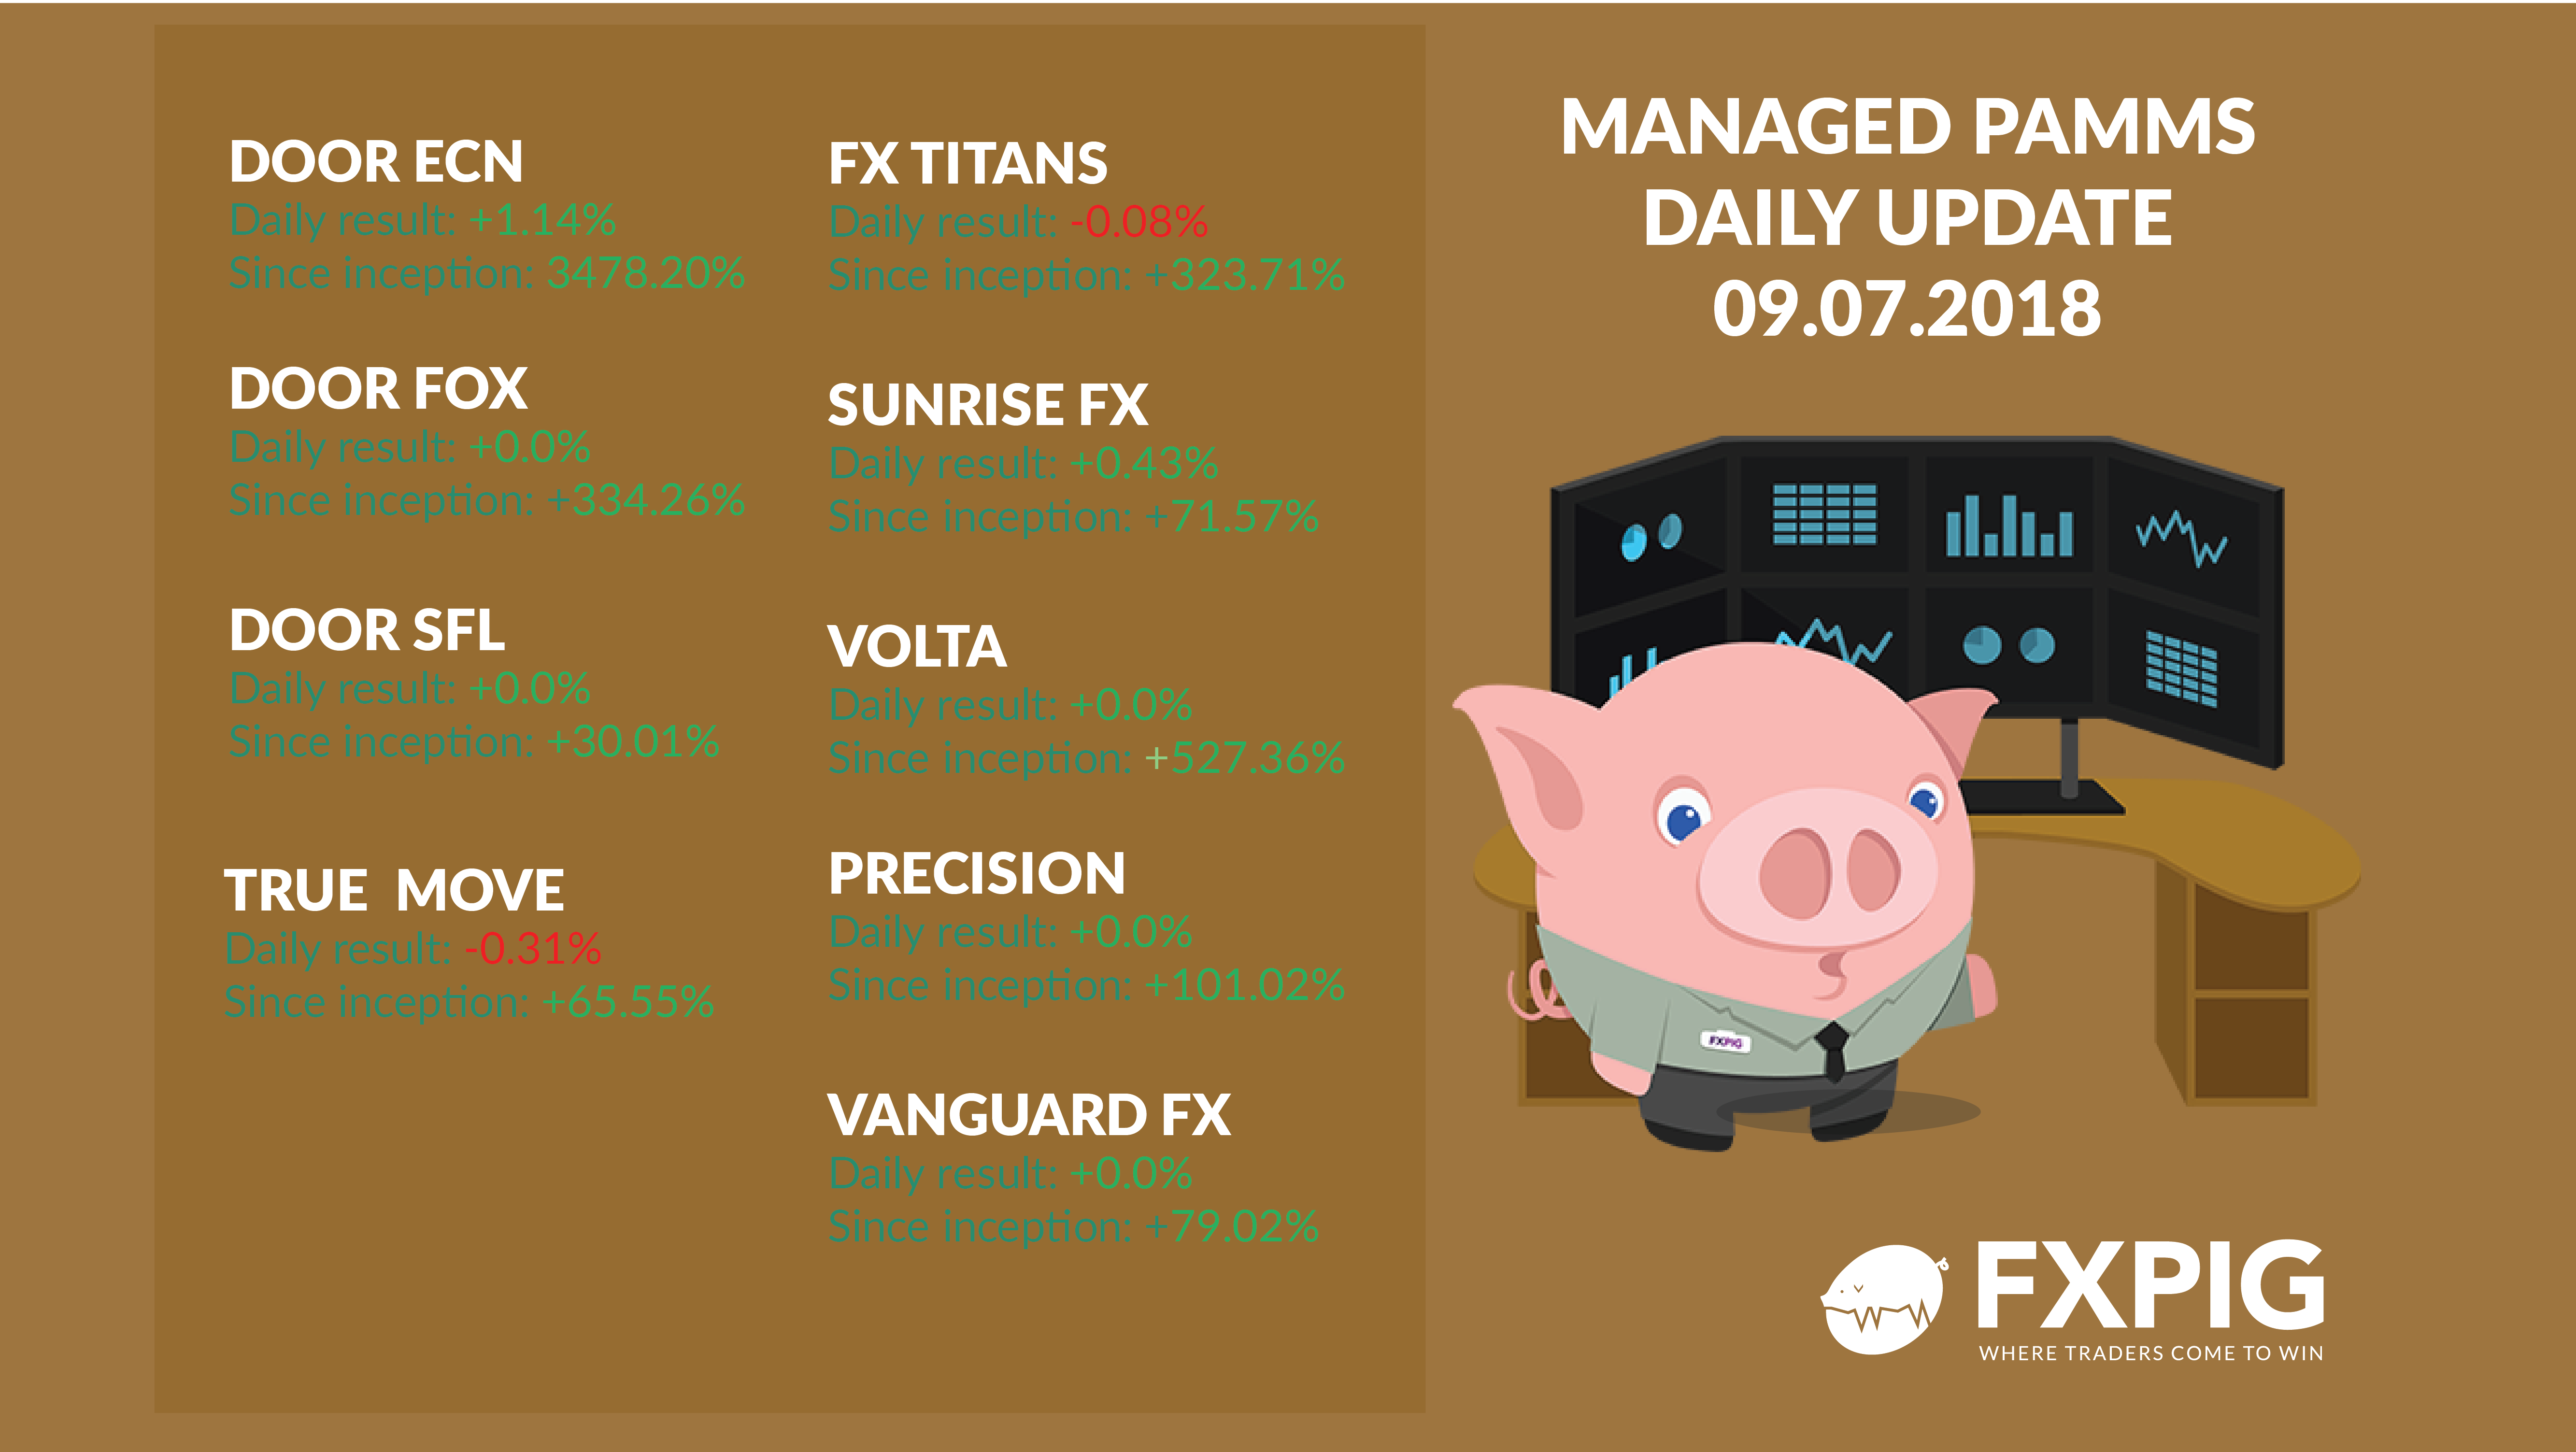 FOREX_Daily-managed-accounts0907_FXPIG